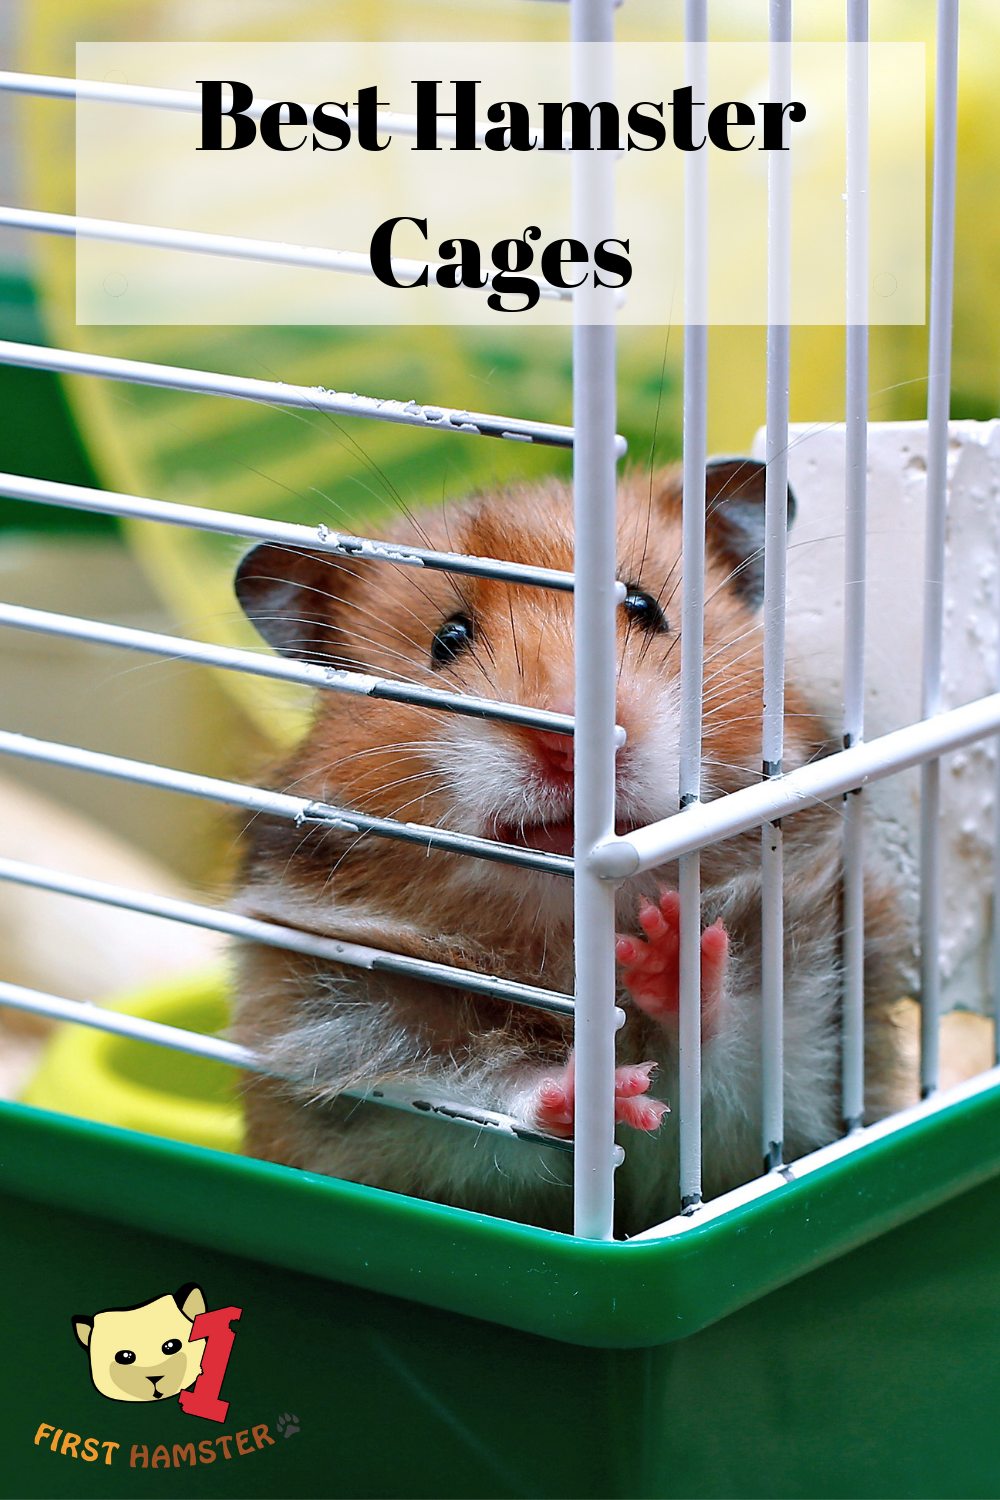 6b8ca930c55e2a8feede041f7163524e - How To Get My Hamster To Stop Biting His Cage